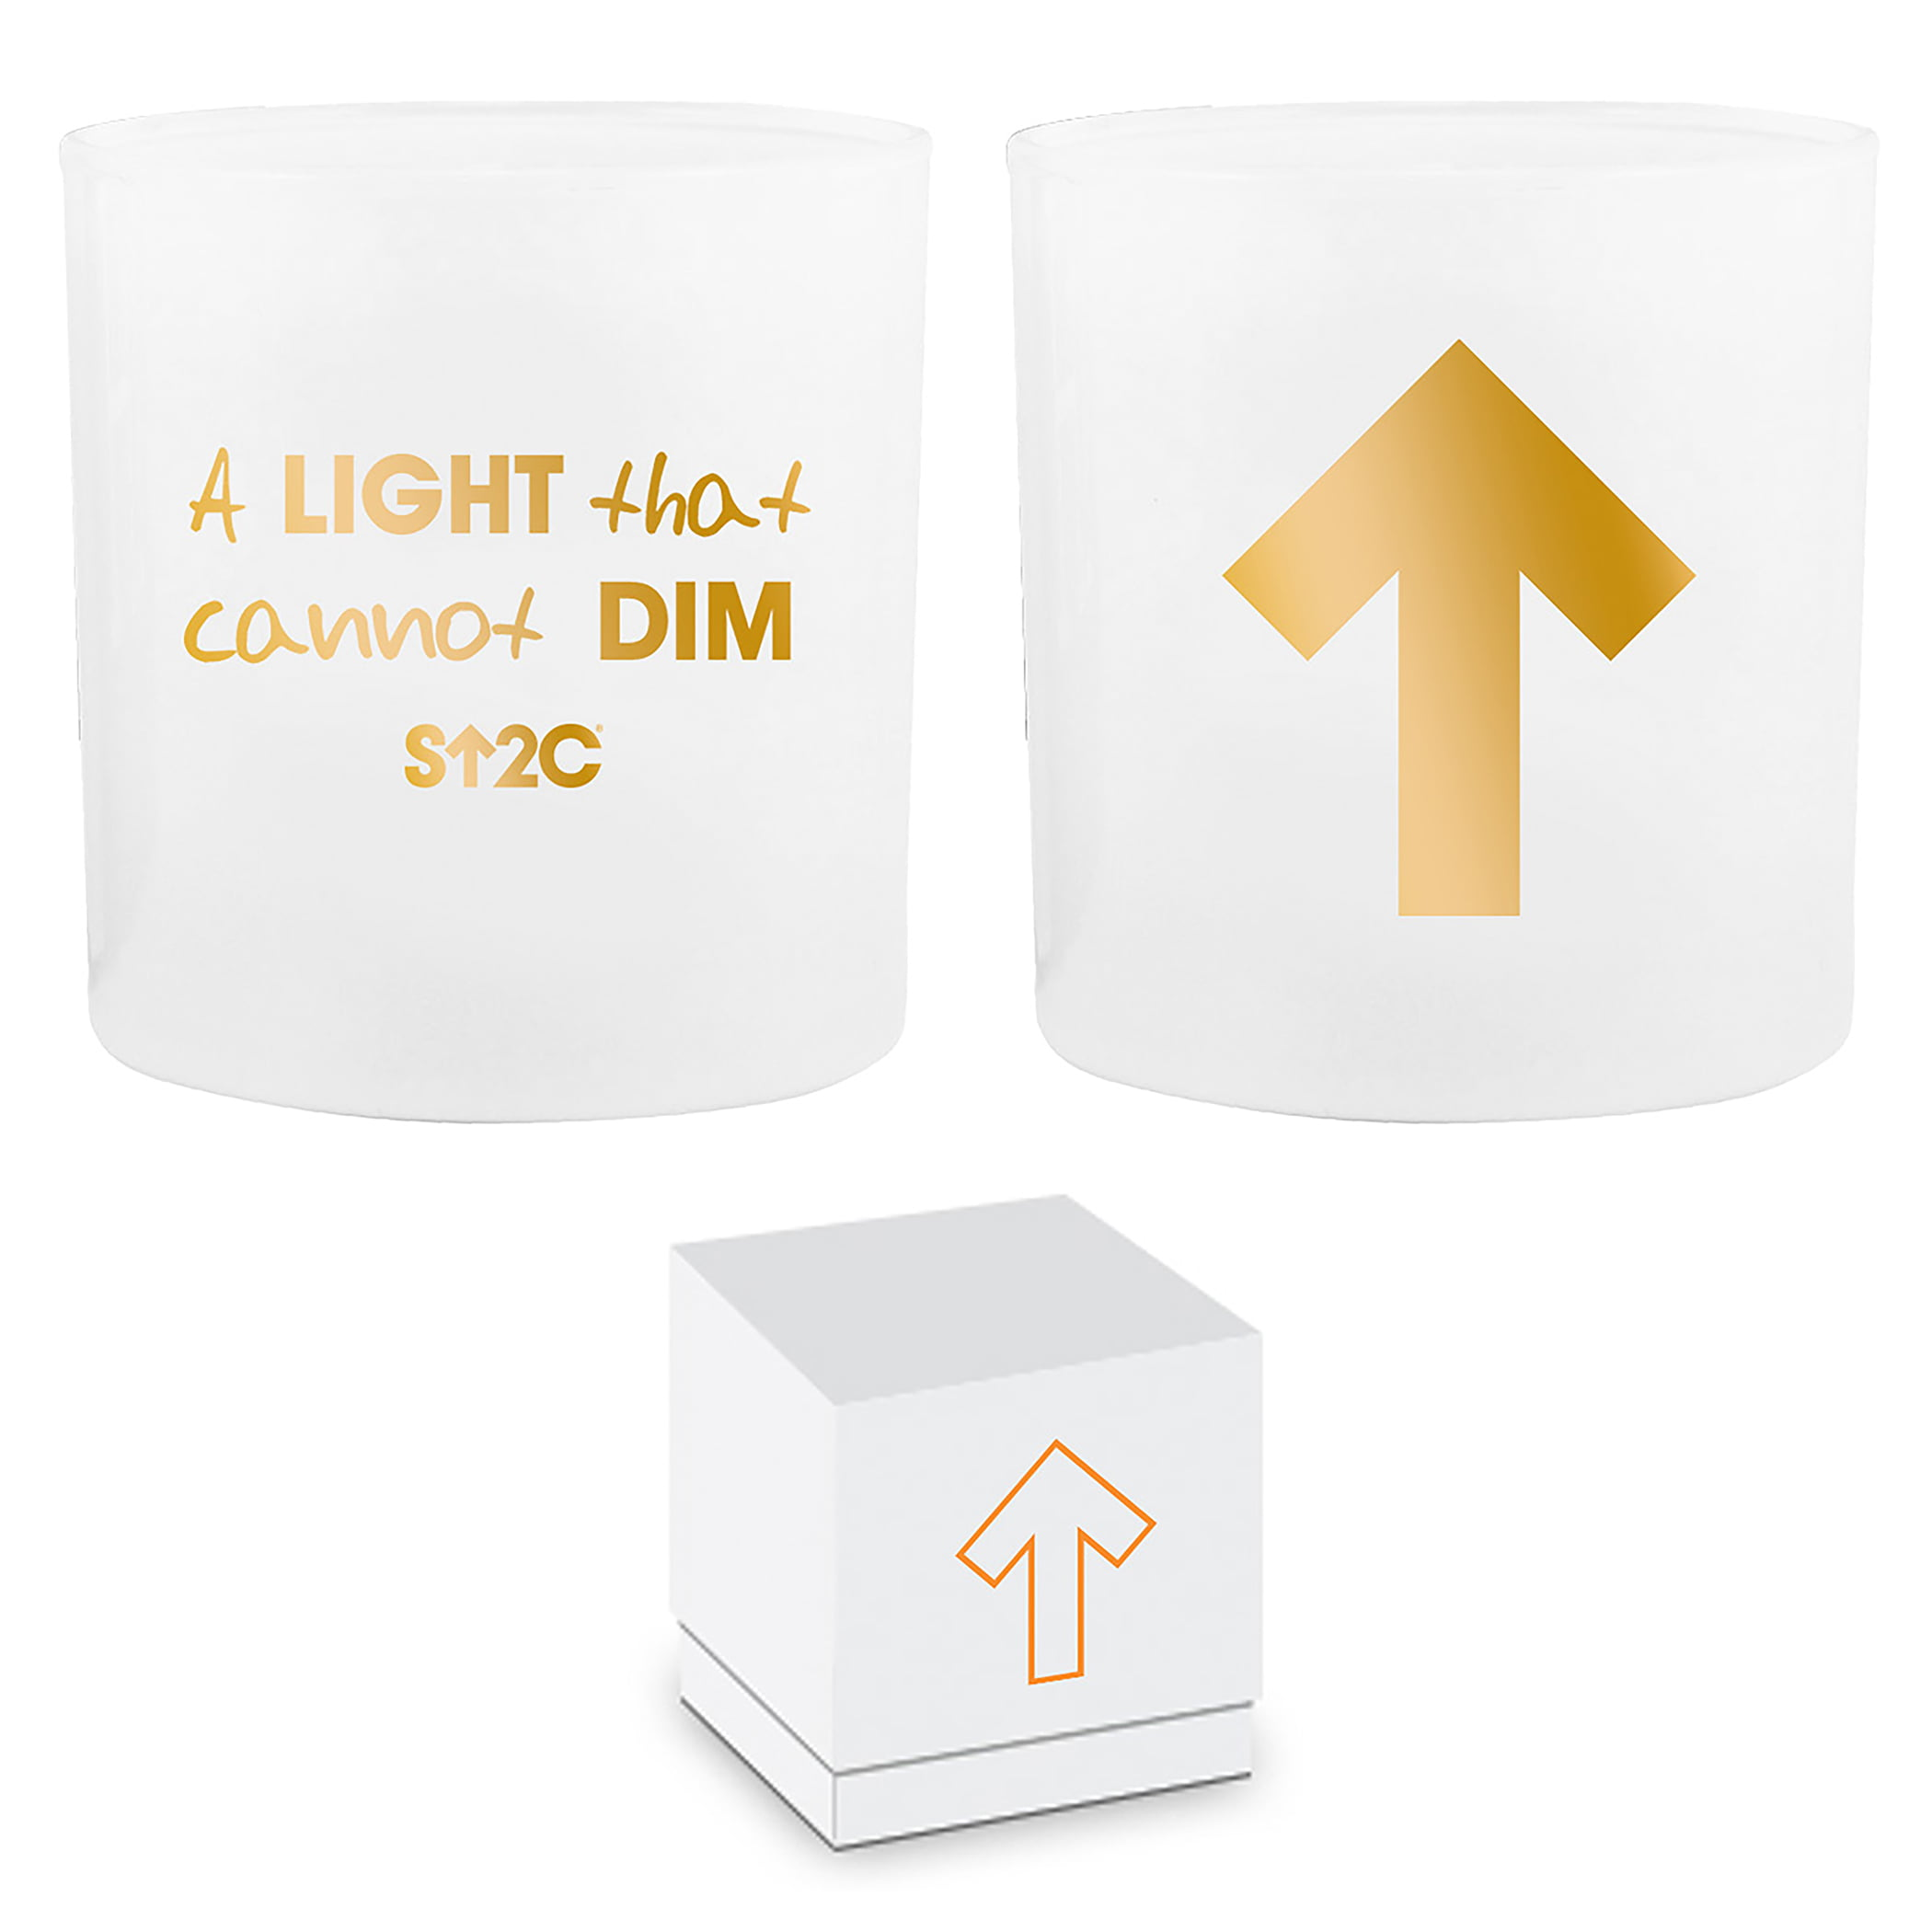 SU2C Boxed candle